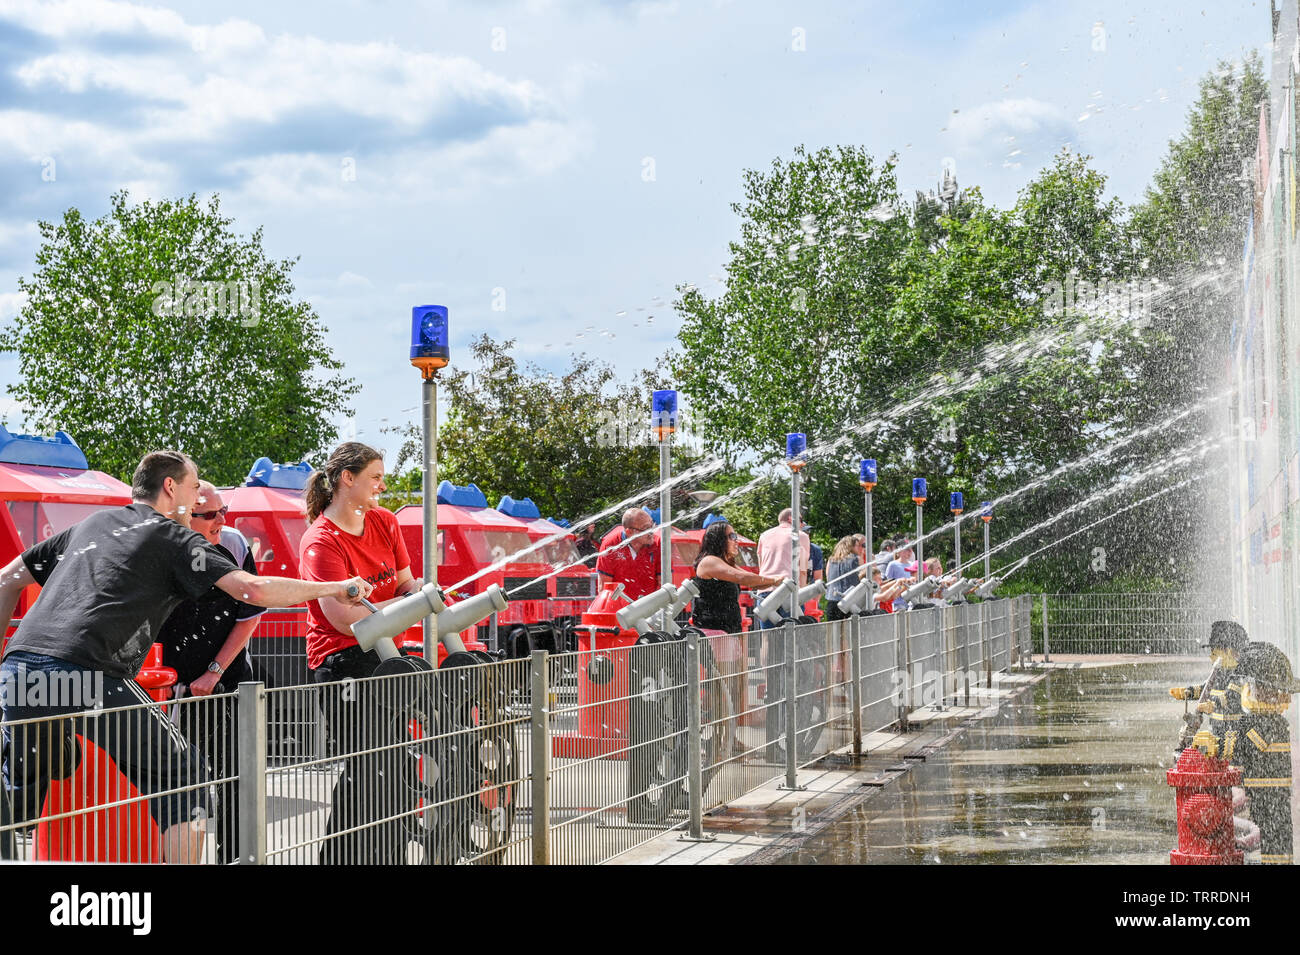 Fireman challenge for kids and parents at Legoland in Billund. This family theme park opened in 1968 and is built by 65 million lego bricks. - Stock Image